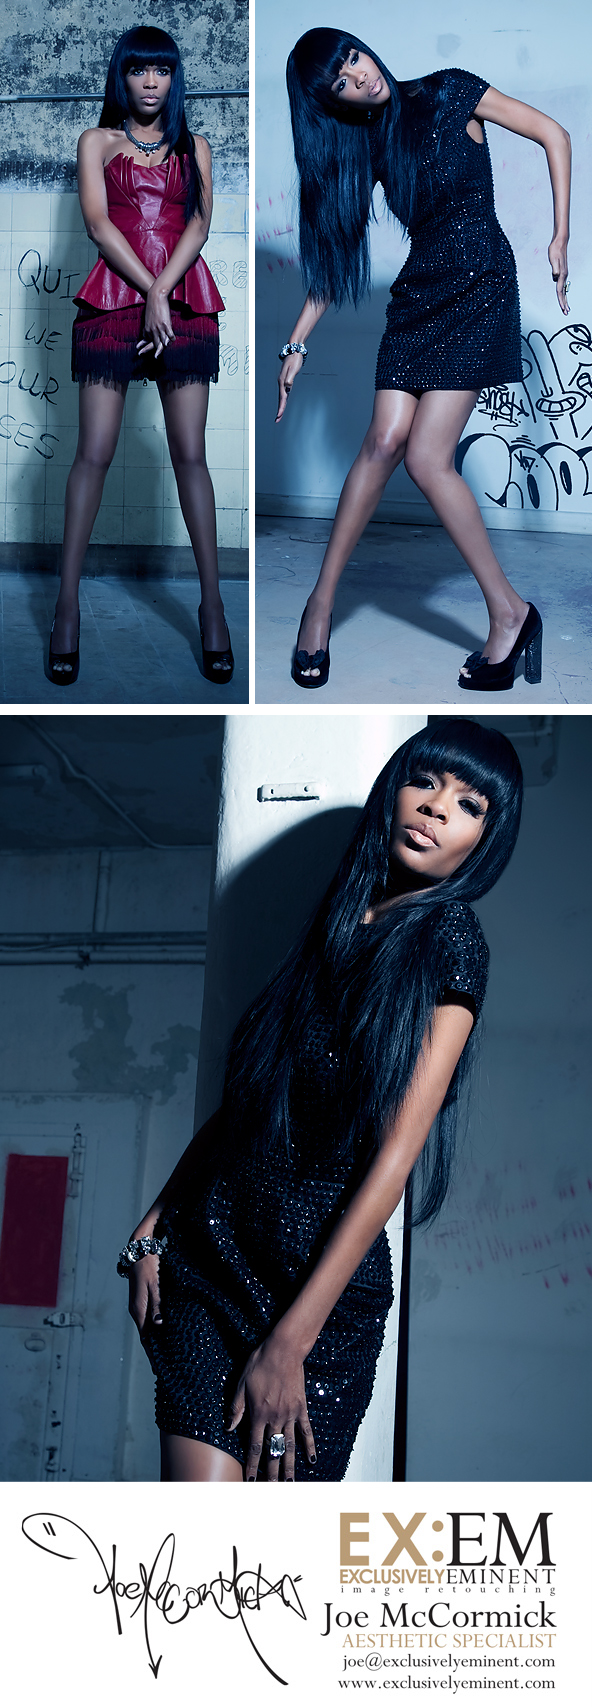 Dec 28, 2010 Photography By Joseph Sinclair Destinys Child Member - Michelle Williams